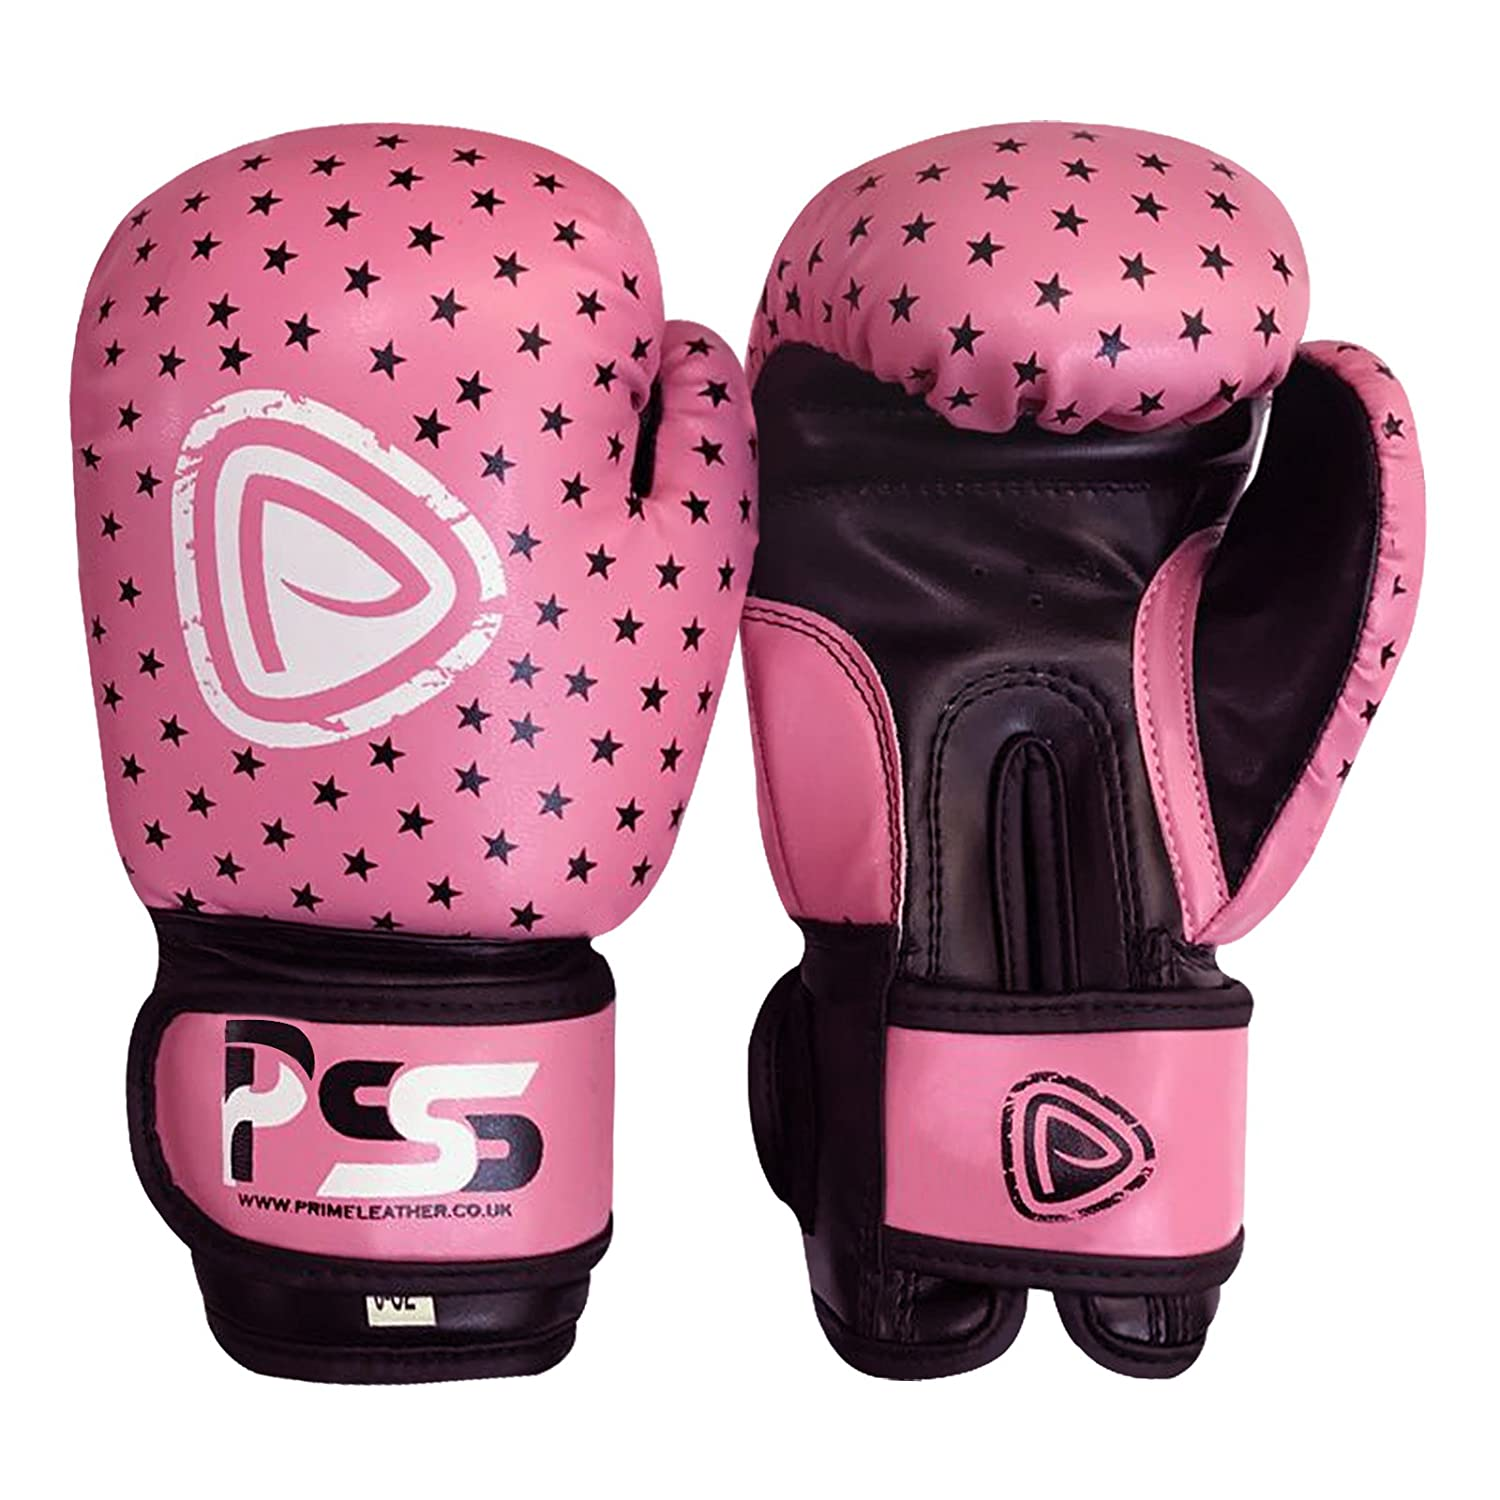 Prime子供用ボクシンググローブMitts MMA Rexレザーパンチバッグ子Fight Sparring 4oz 6ozピンクカラーwith Stars (ピンクwith星、4オンス) B00LX3SJMY